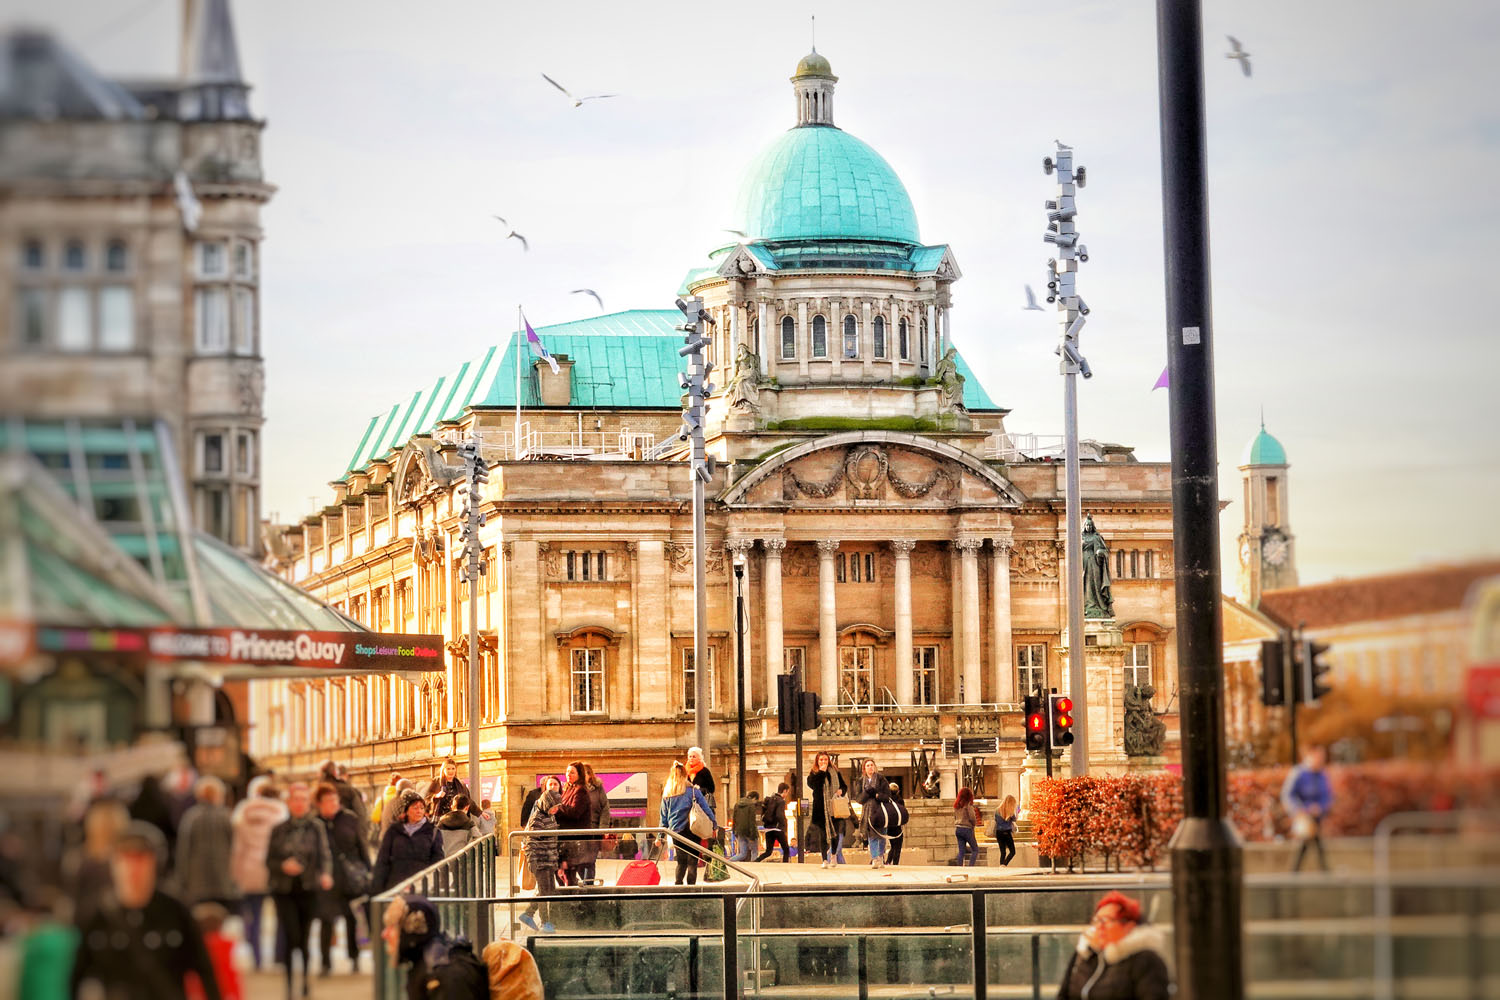 Hull City Hall in Queen Victoria Square.